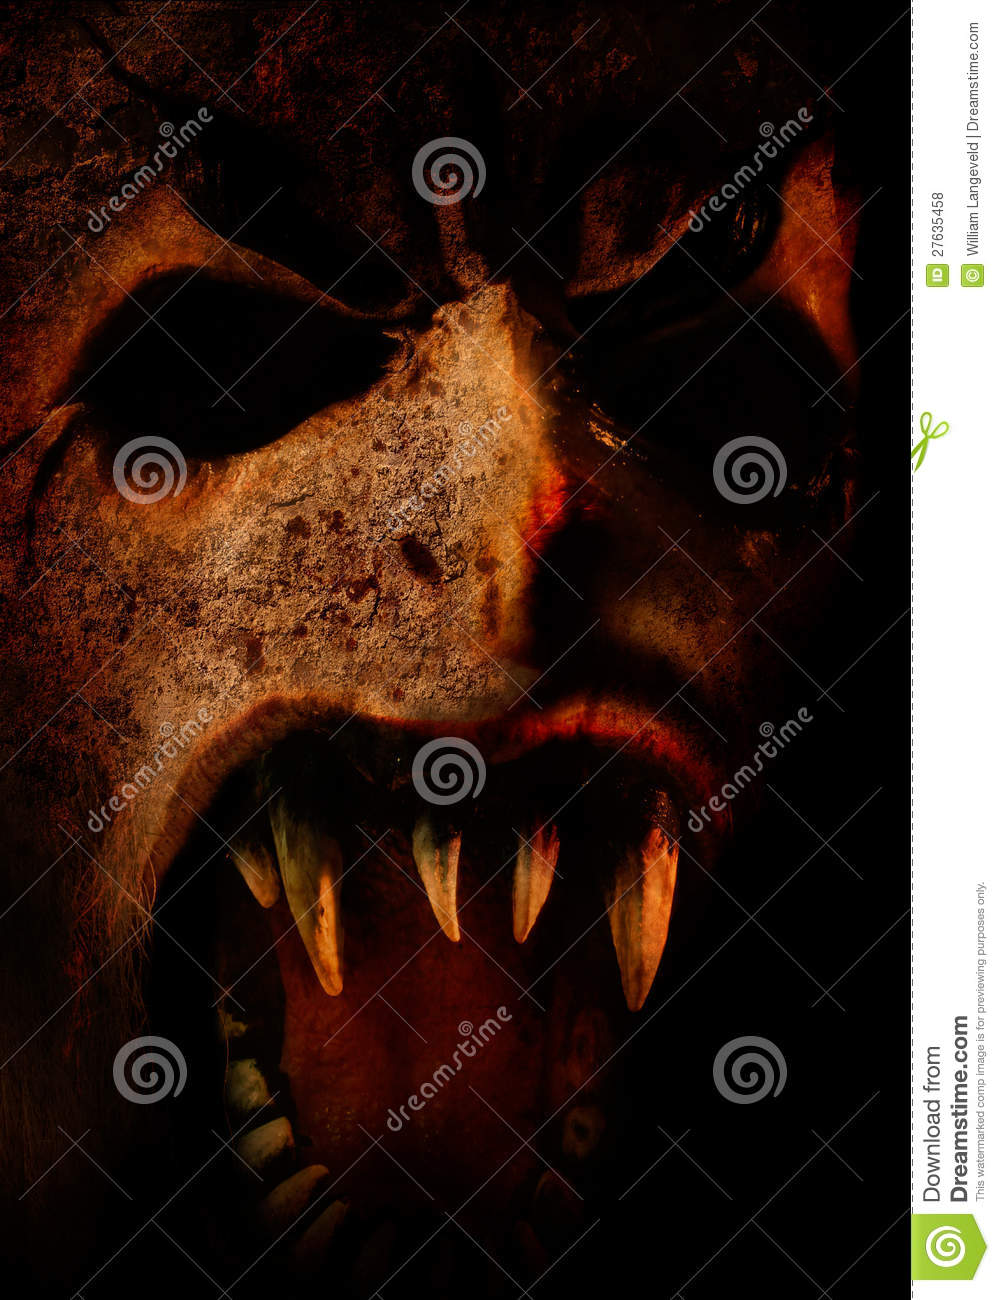 Scary horror face for you halloween or dark party